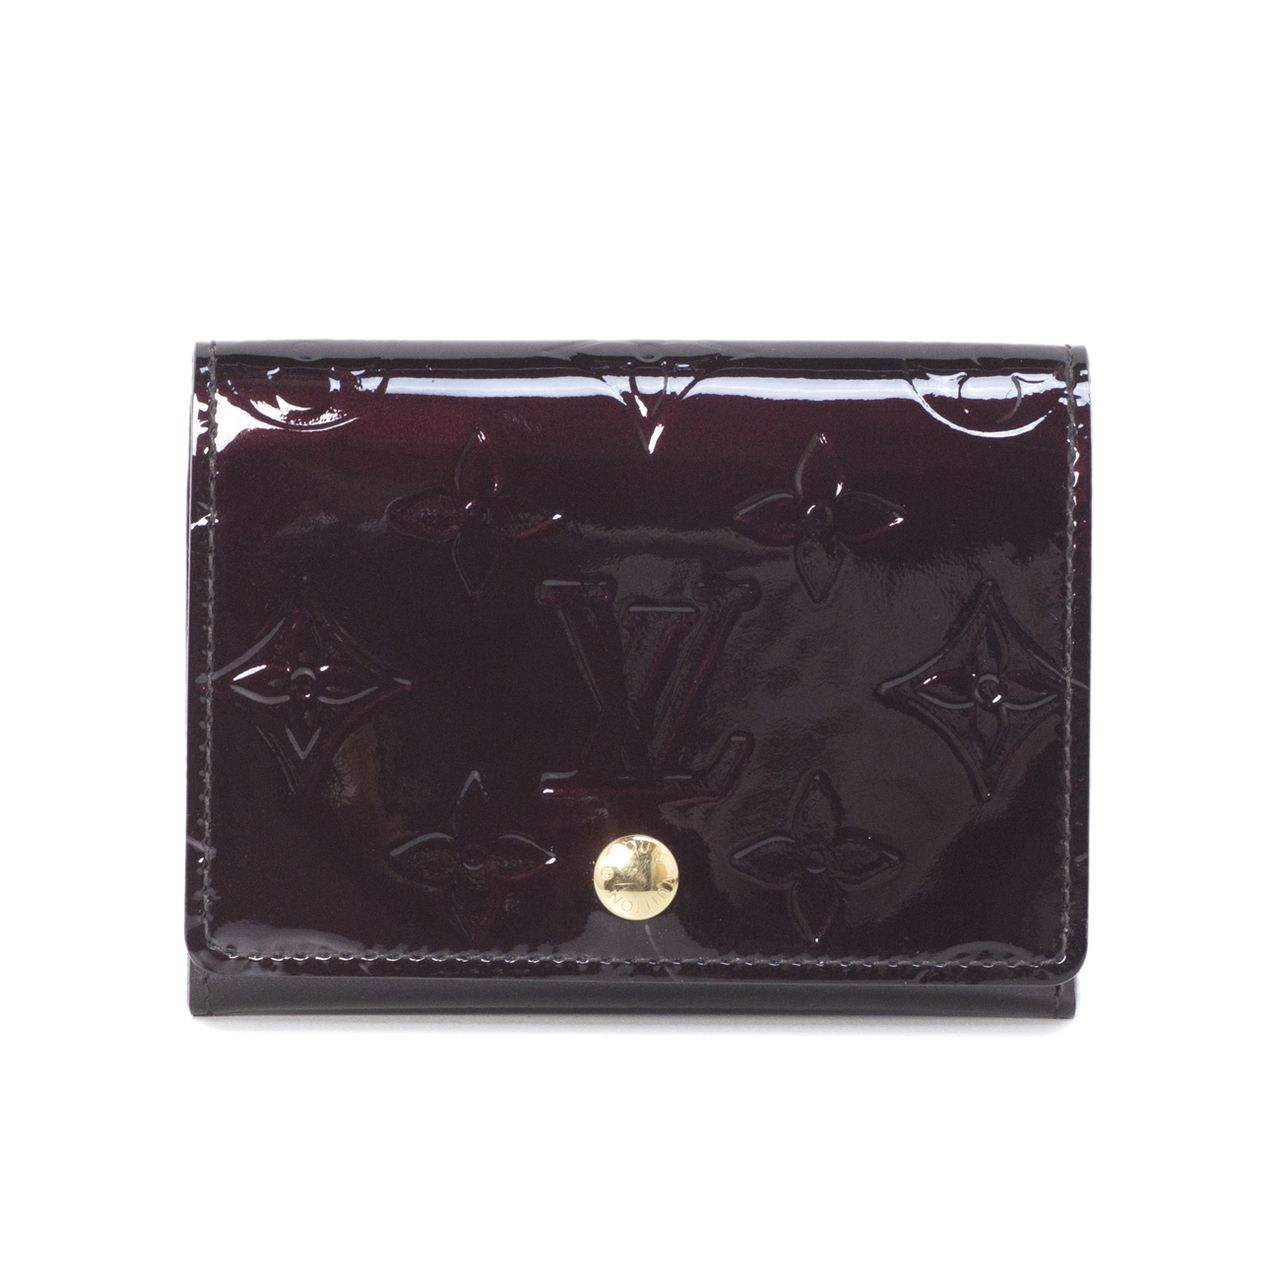 Louis Vuitton Amarante Vernis Business Card Holder Modaselle